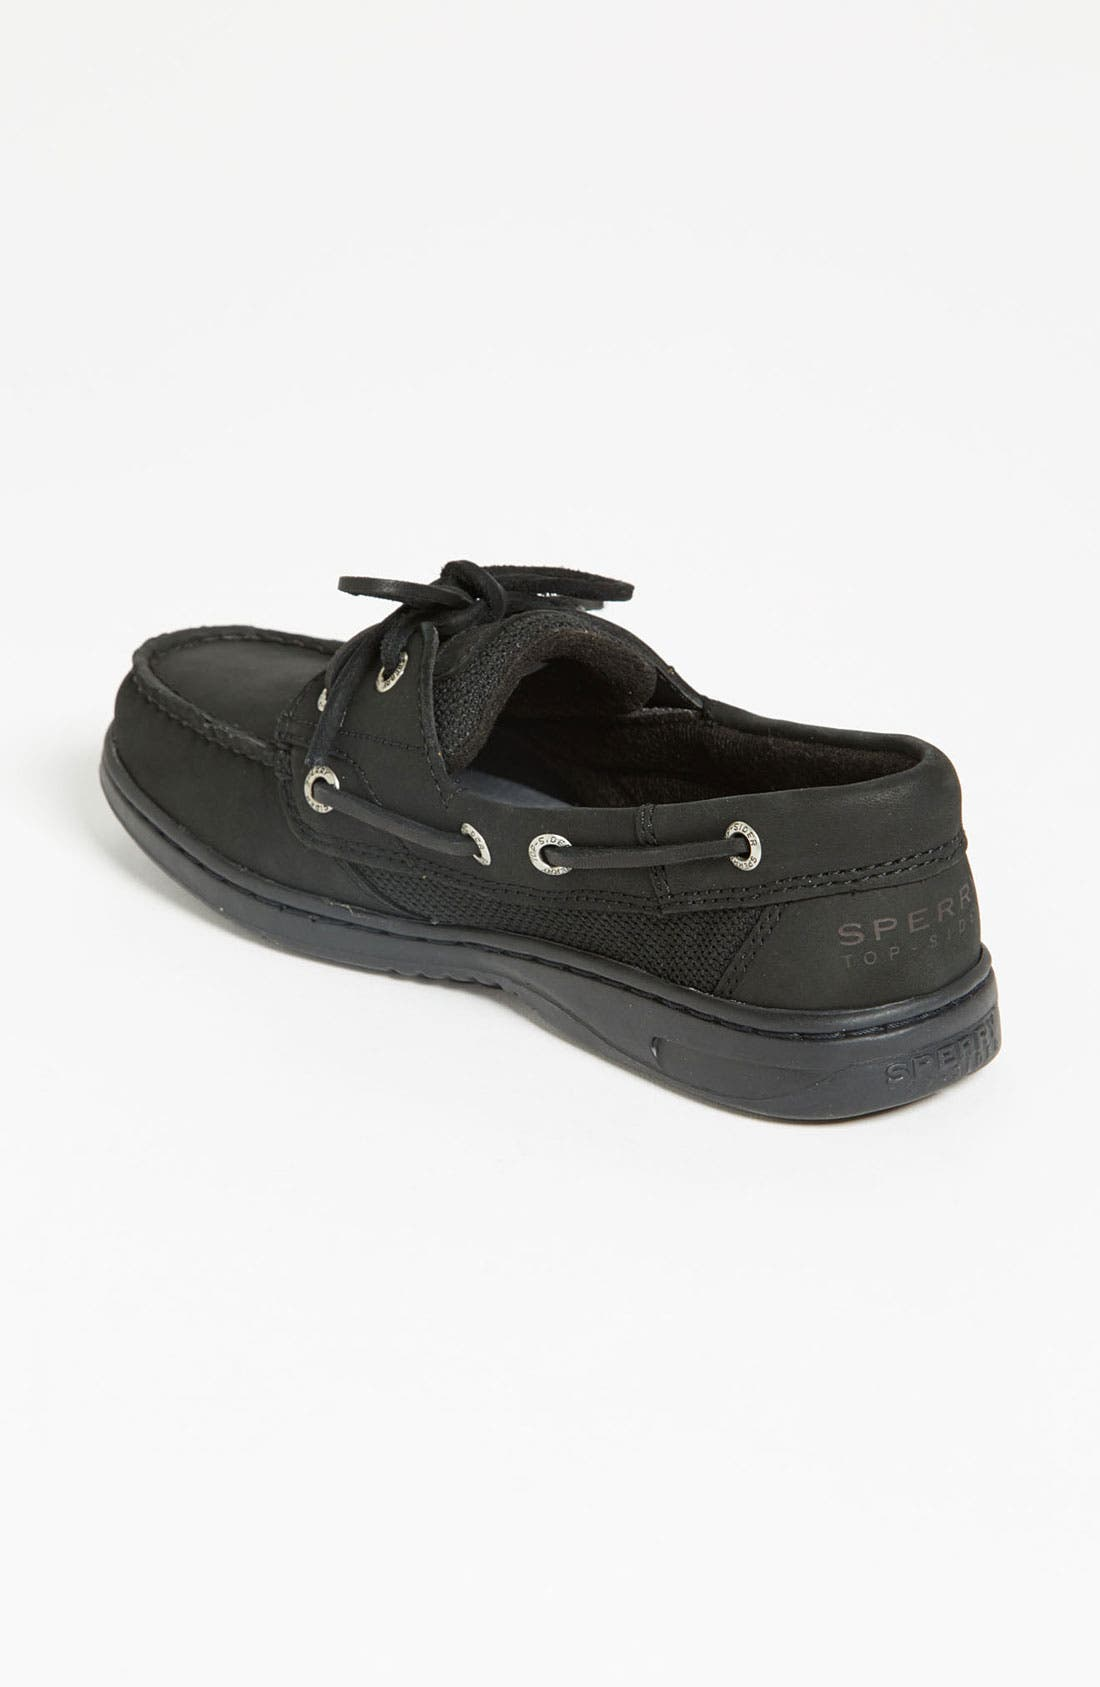 Top-Sider<sup>®</sup> 'Bluefish 2 Eye' Boat Shoe,                             Alternate thumbnail 3, color,                             001